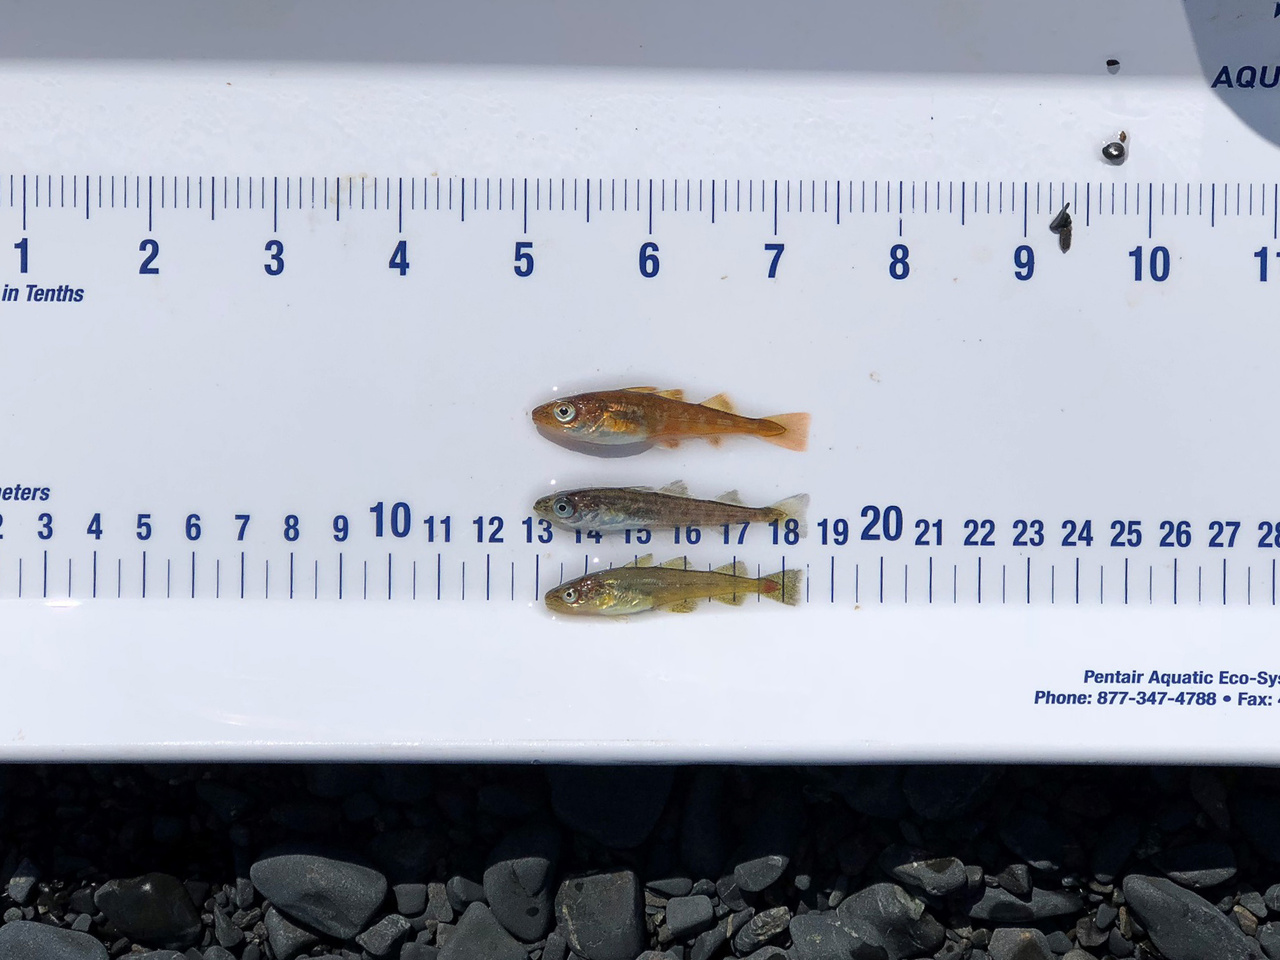 On the measuring board are three species of 'cod' (aka gadids) that often co-occur in the beach seine collections.